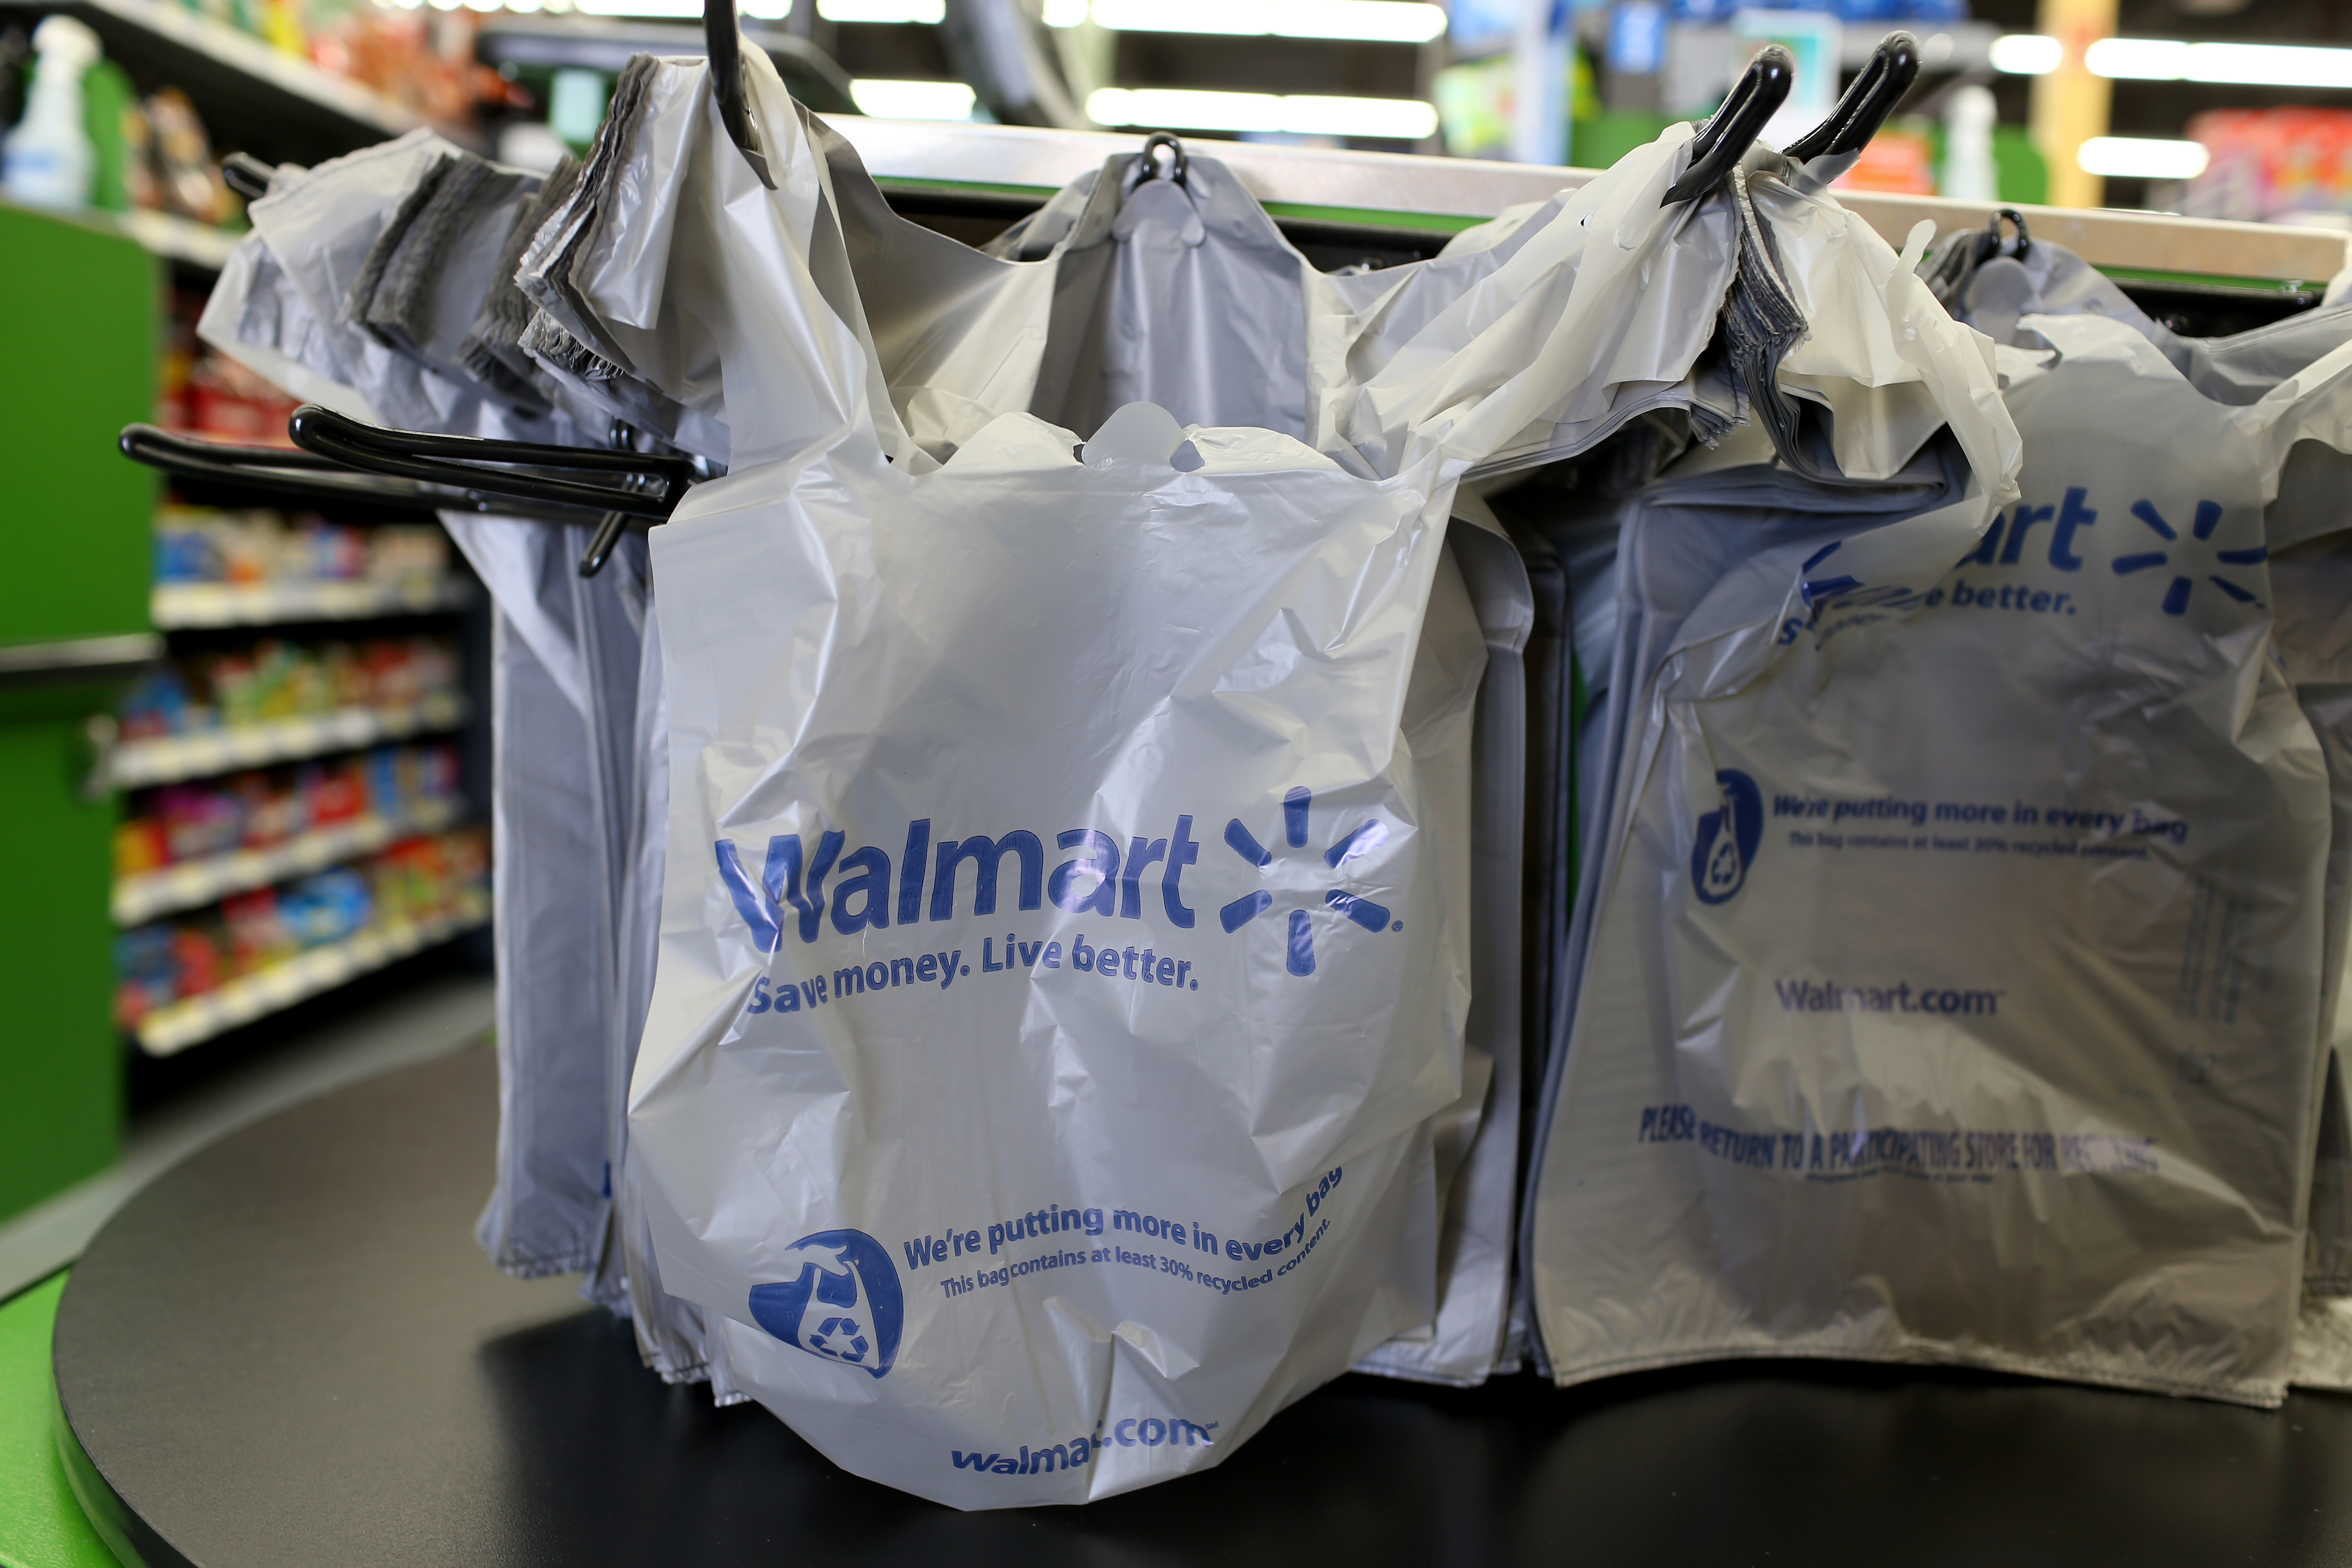 Walmart bags are seen in the store in Miami.